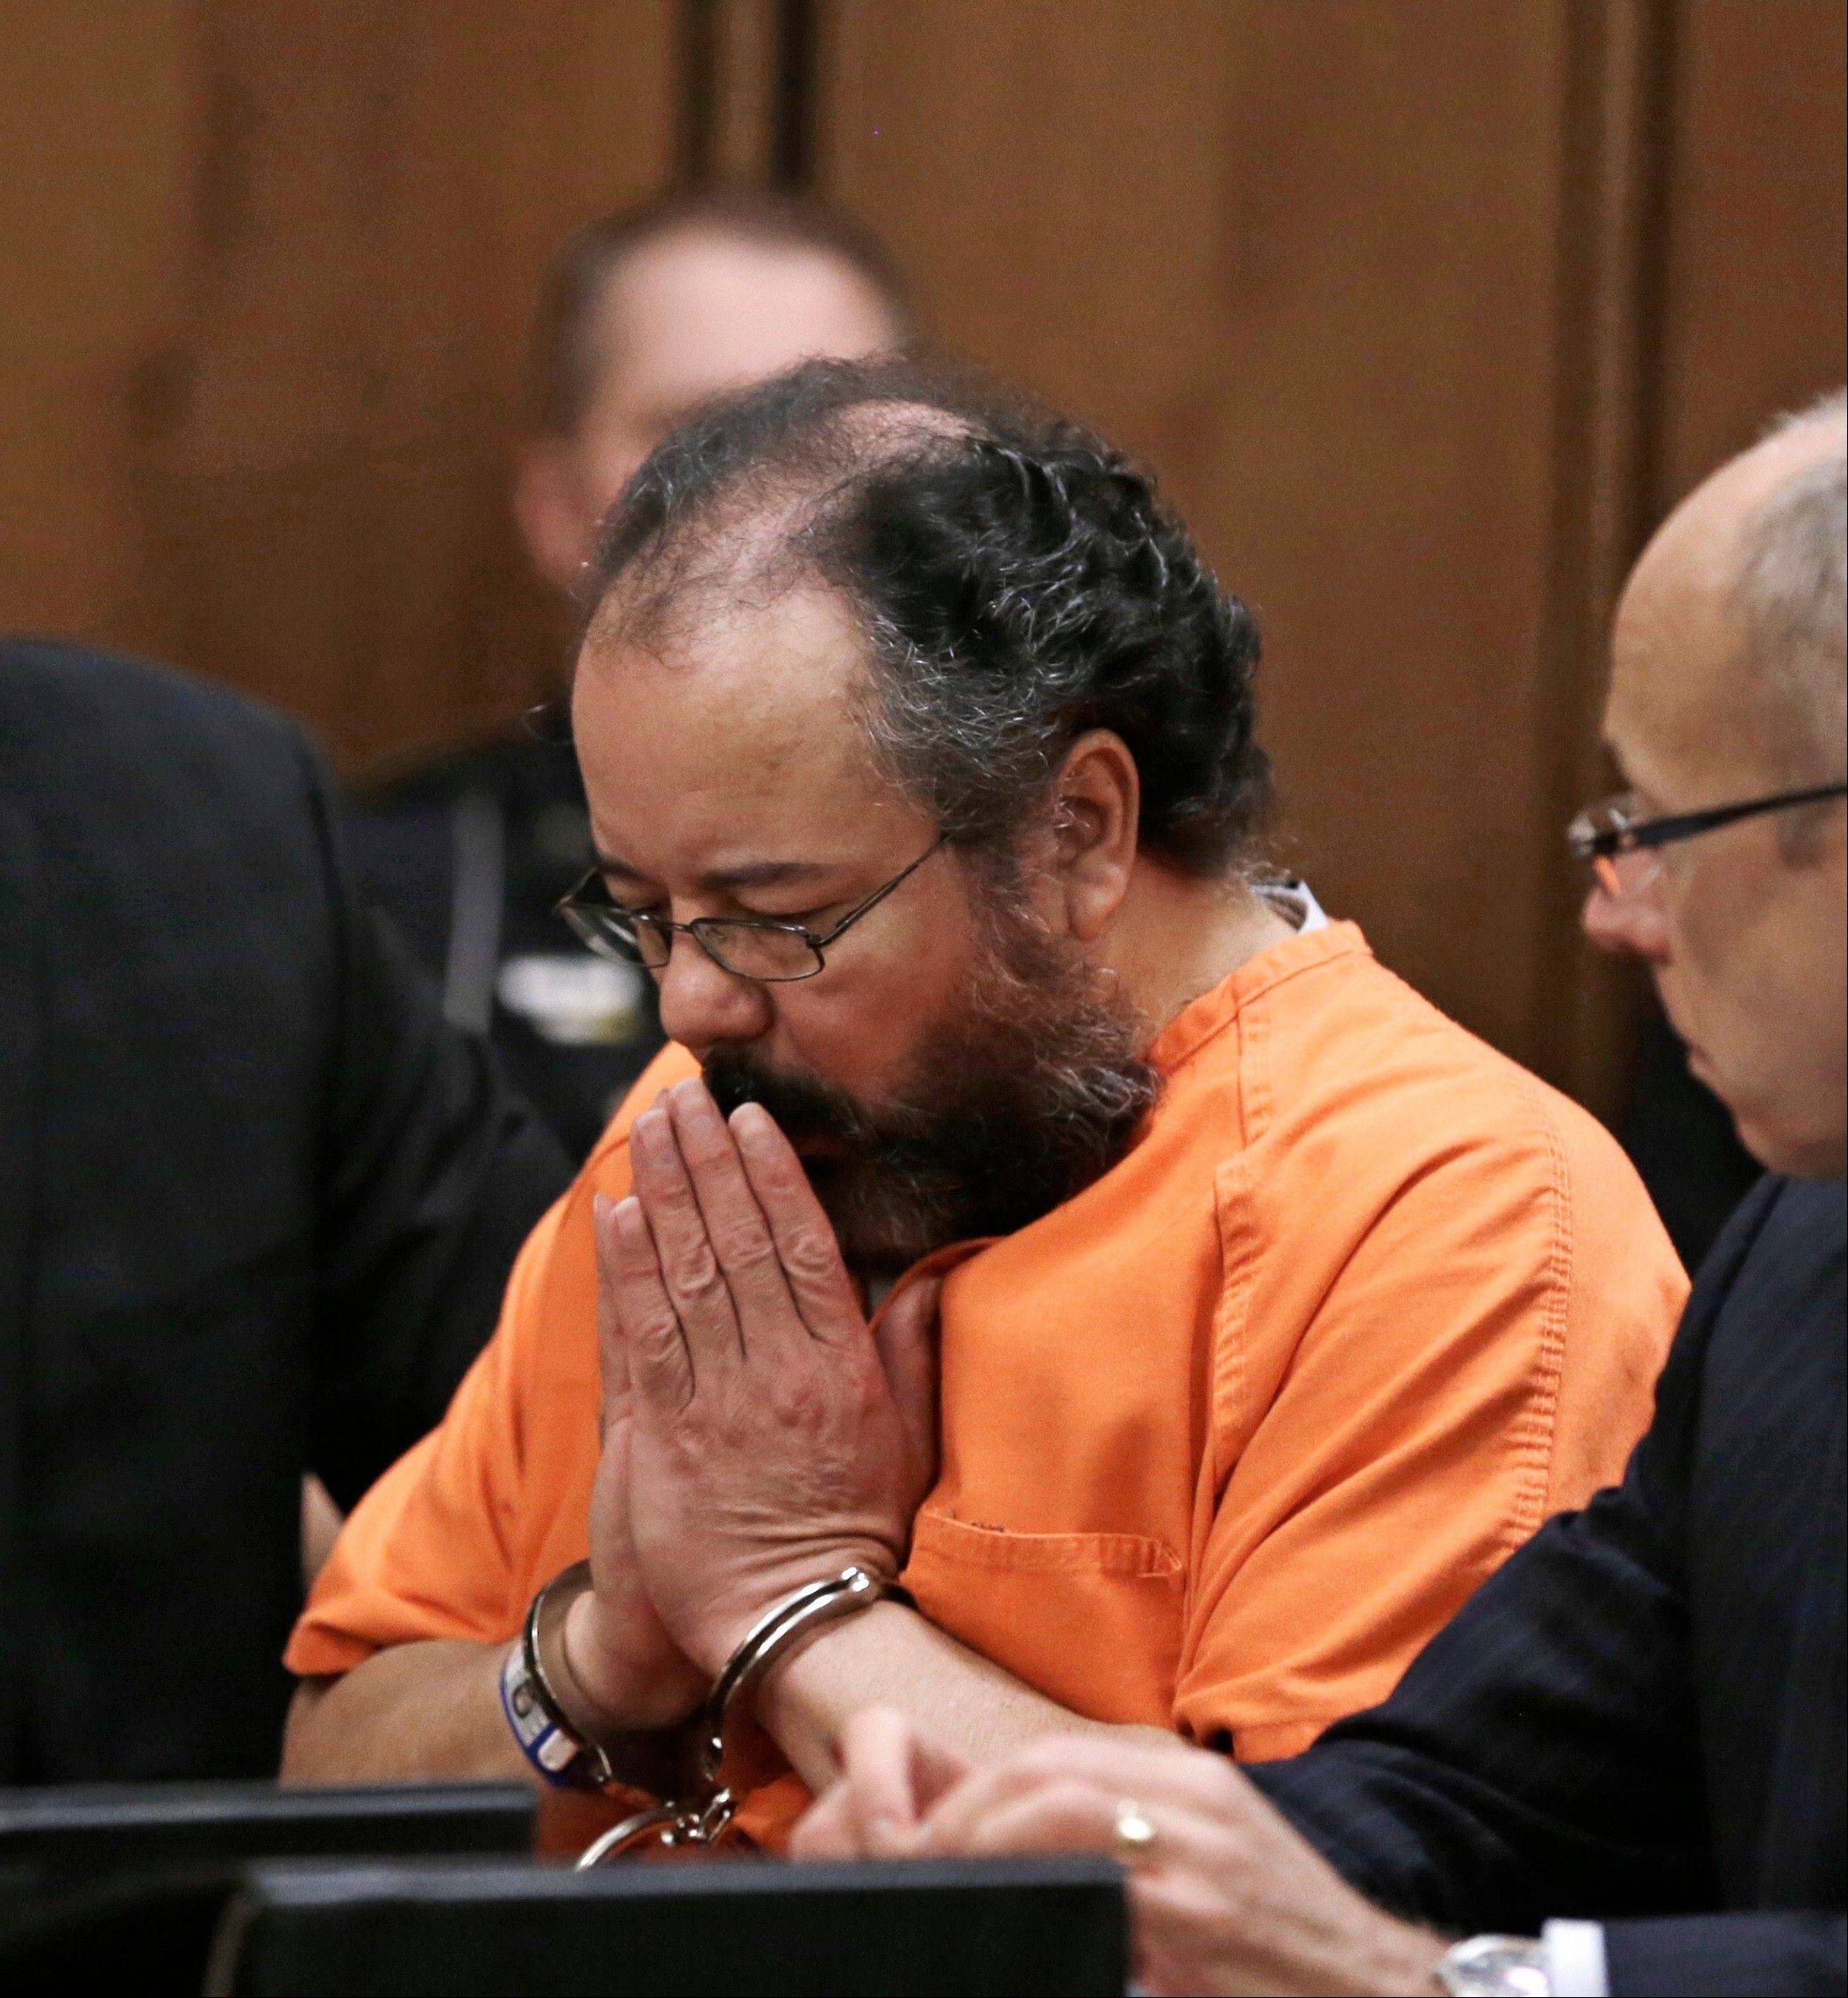 Ariel Castro, who held 3 women captive for a decade, committed suicide Tuesday.